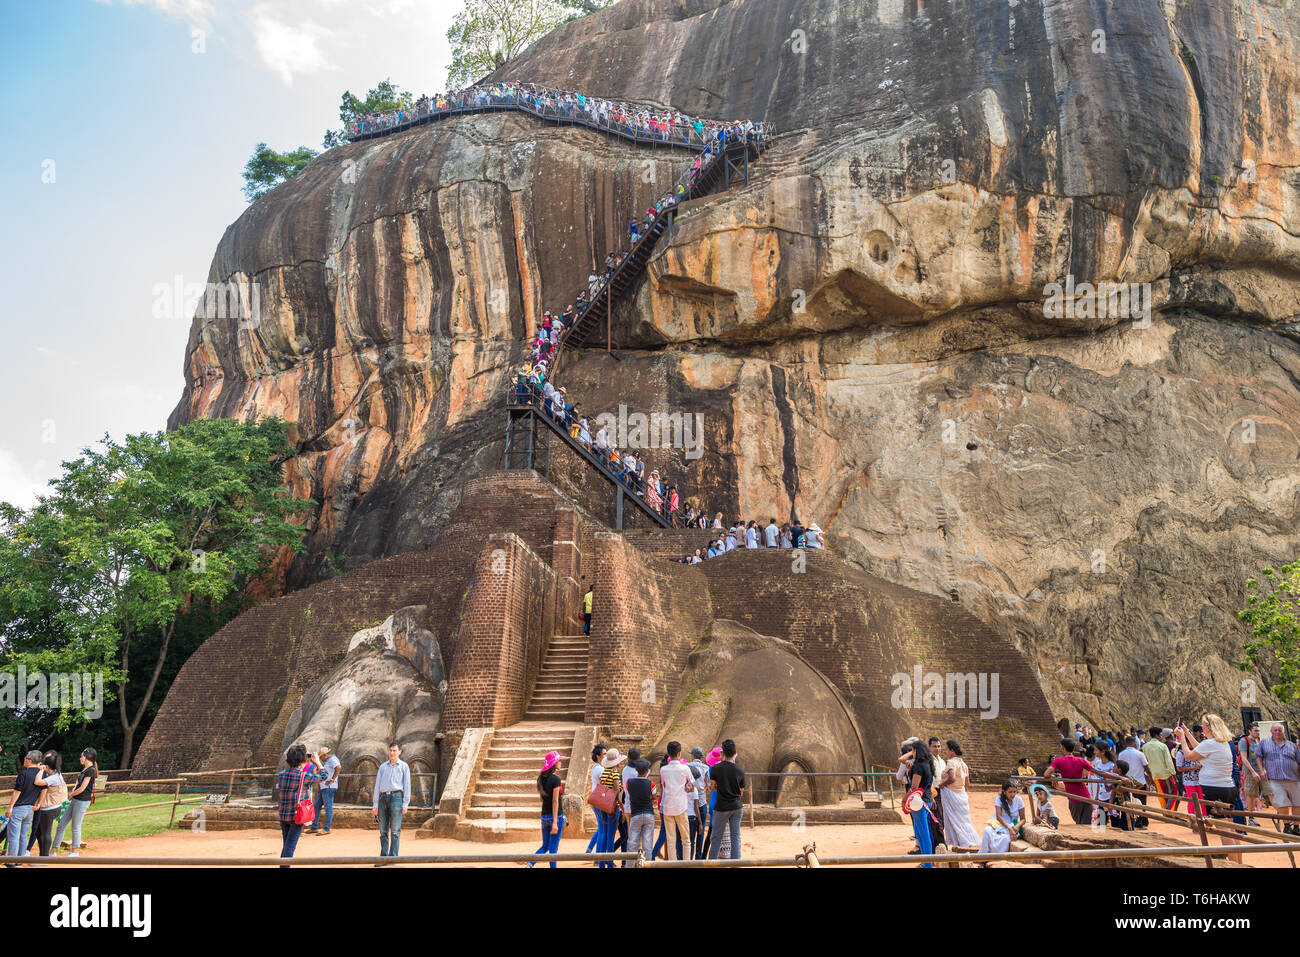 The lions gate of the Sigiriya rock fortress - Stock Image